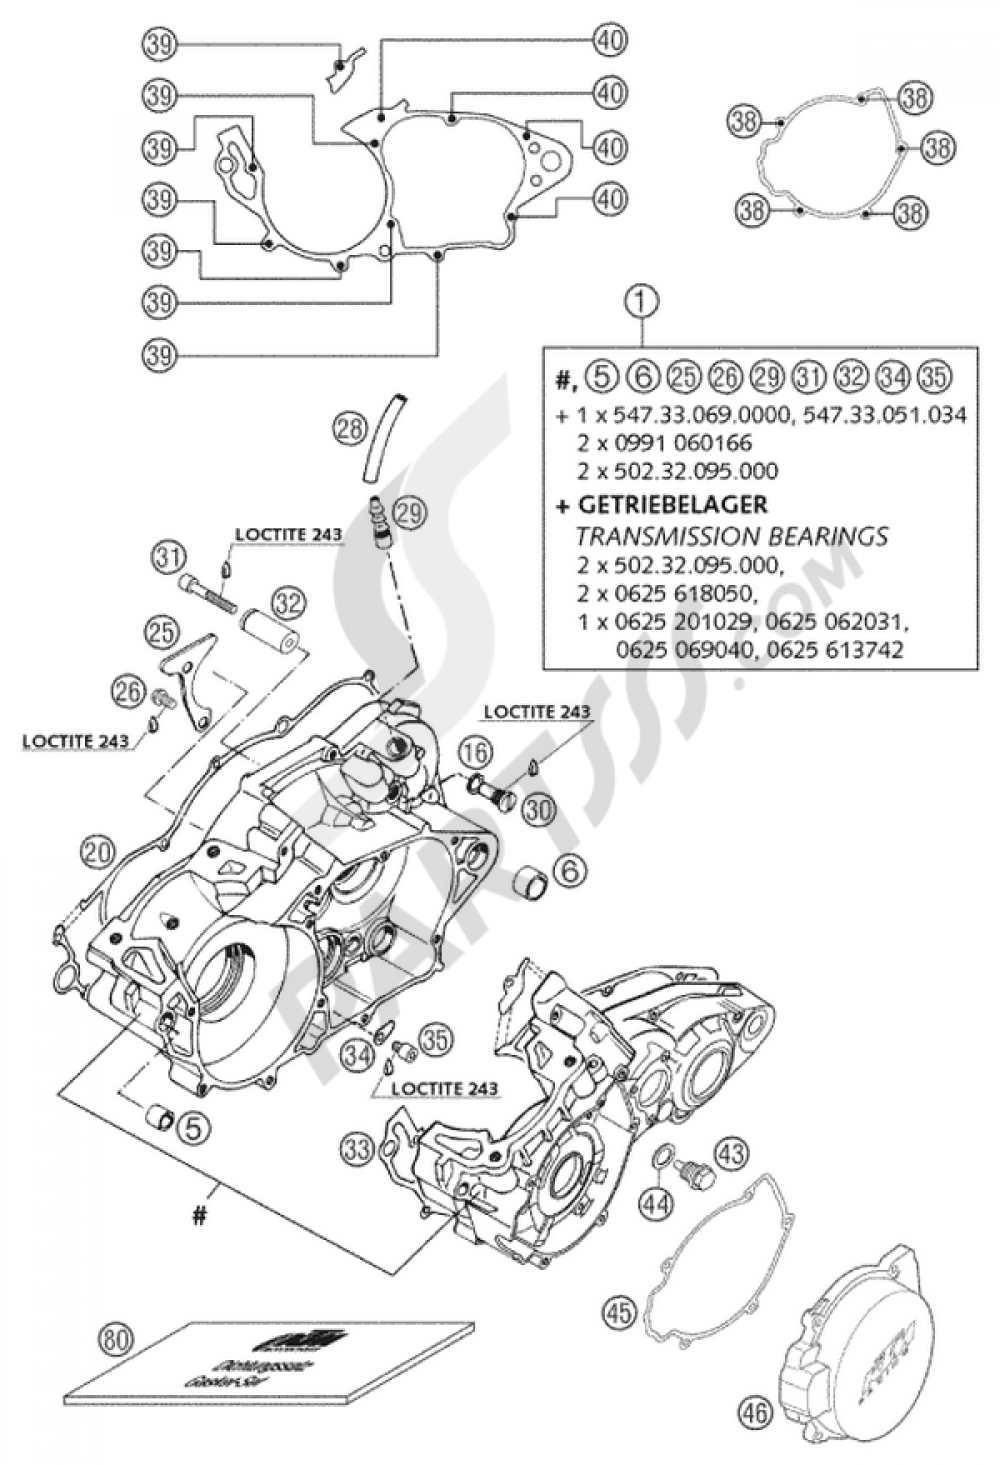 Engine Case 250 300 380 2002 Ktm Exc Six Days Eu Diagram